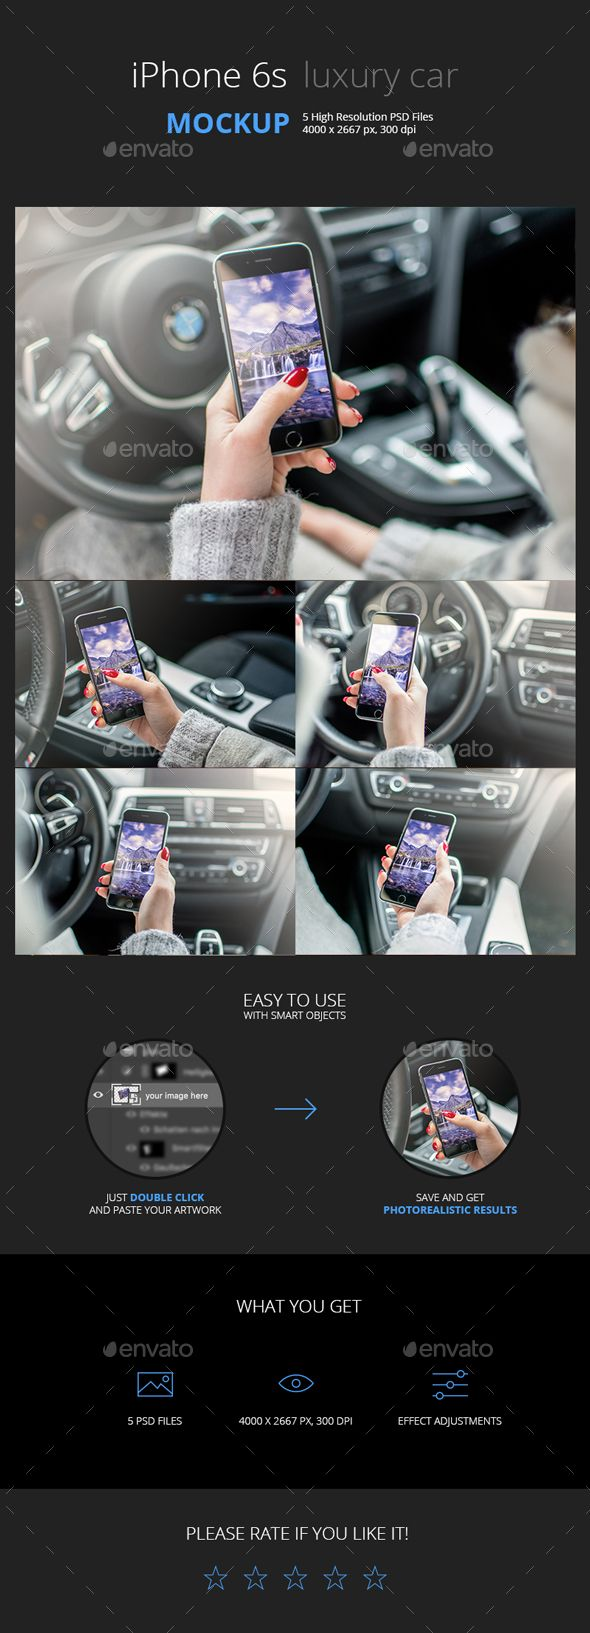 Phone in a luxury car mockup hands on